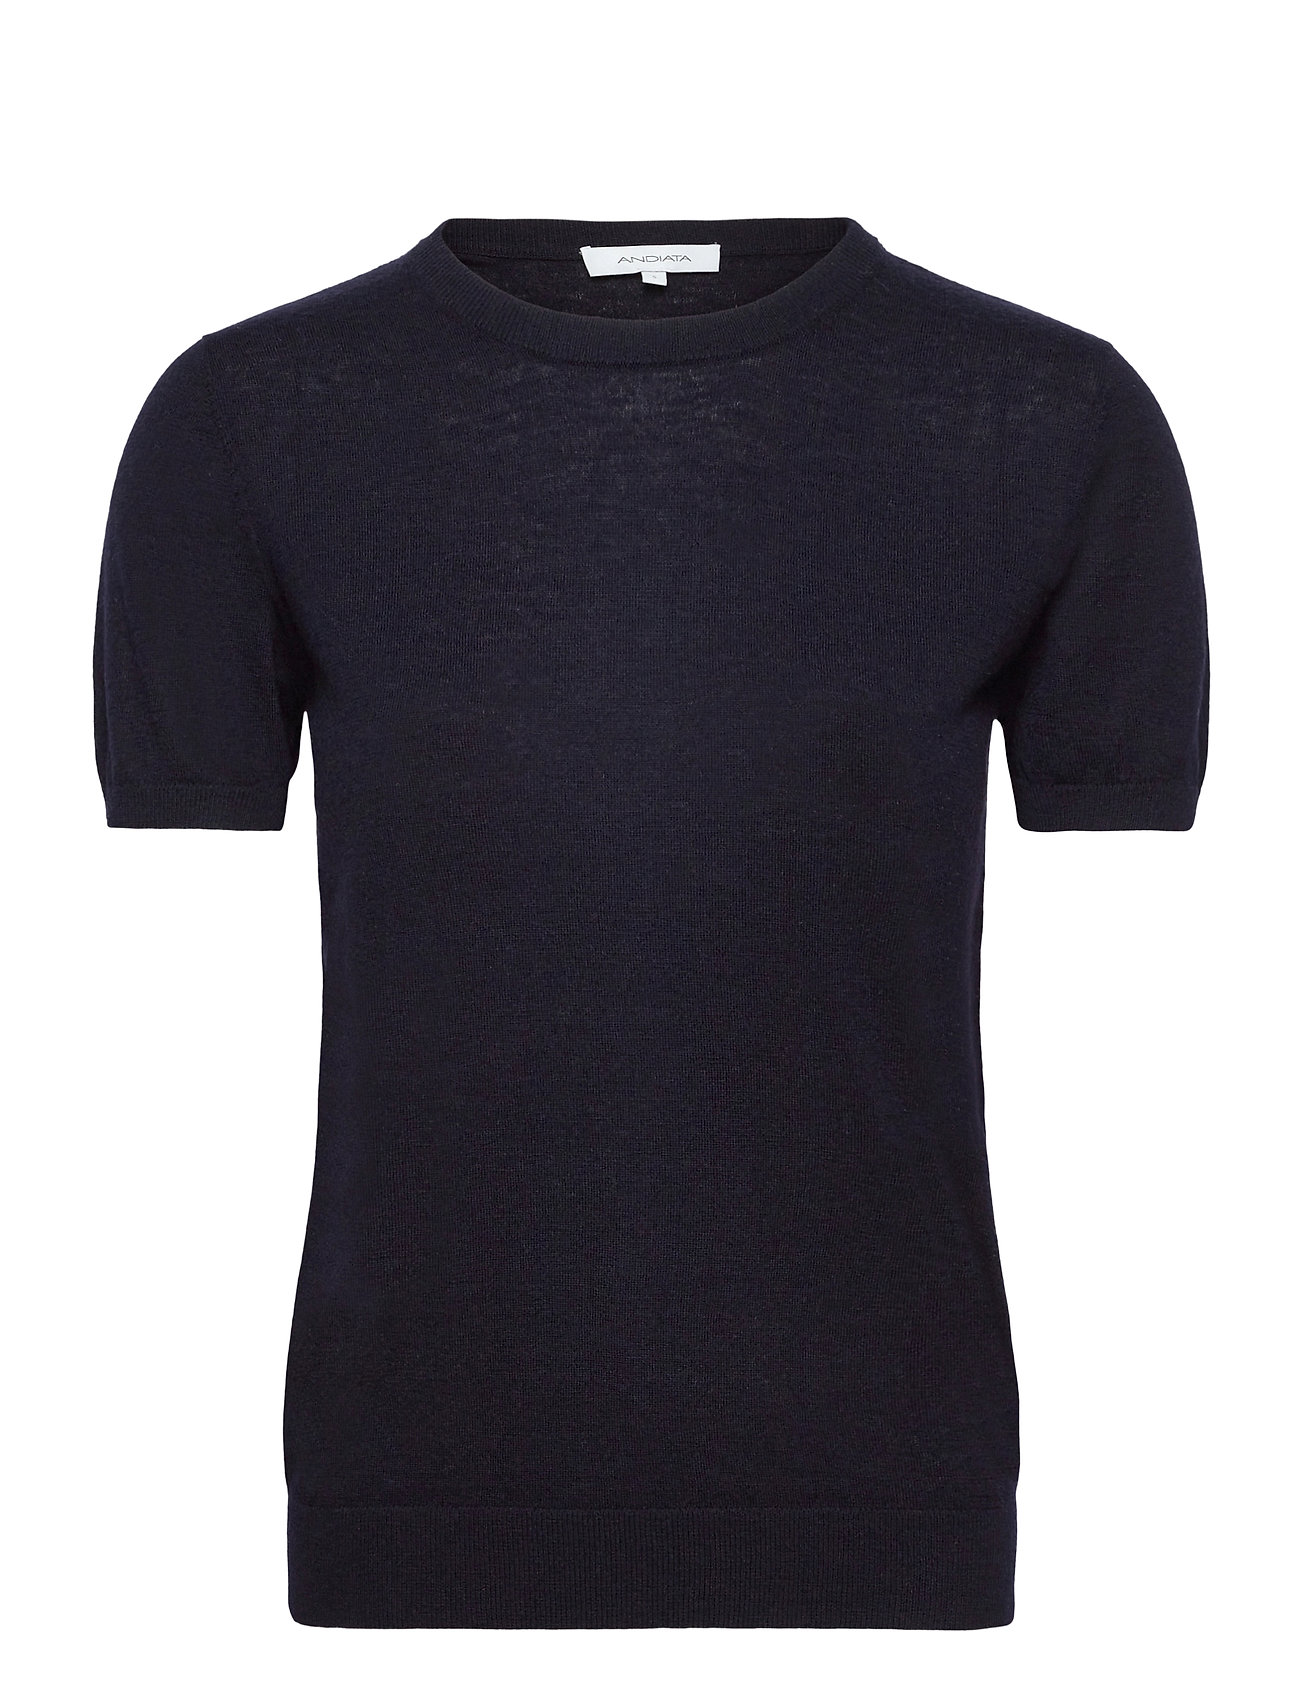 Image of Josefa Sl Knitted Top T-Shirts & Tops Knitted T-Skjorte/tops Blå Andiata (3476117863)